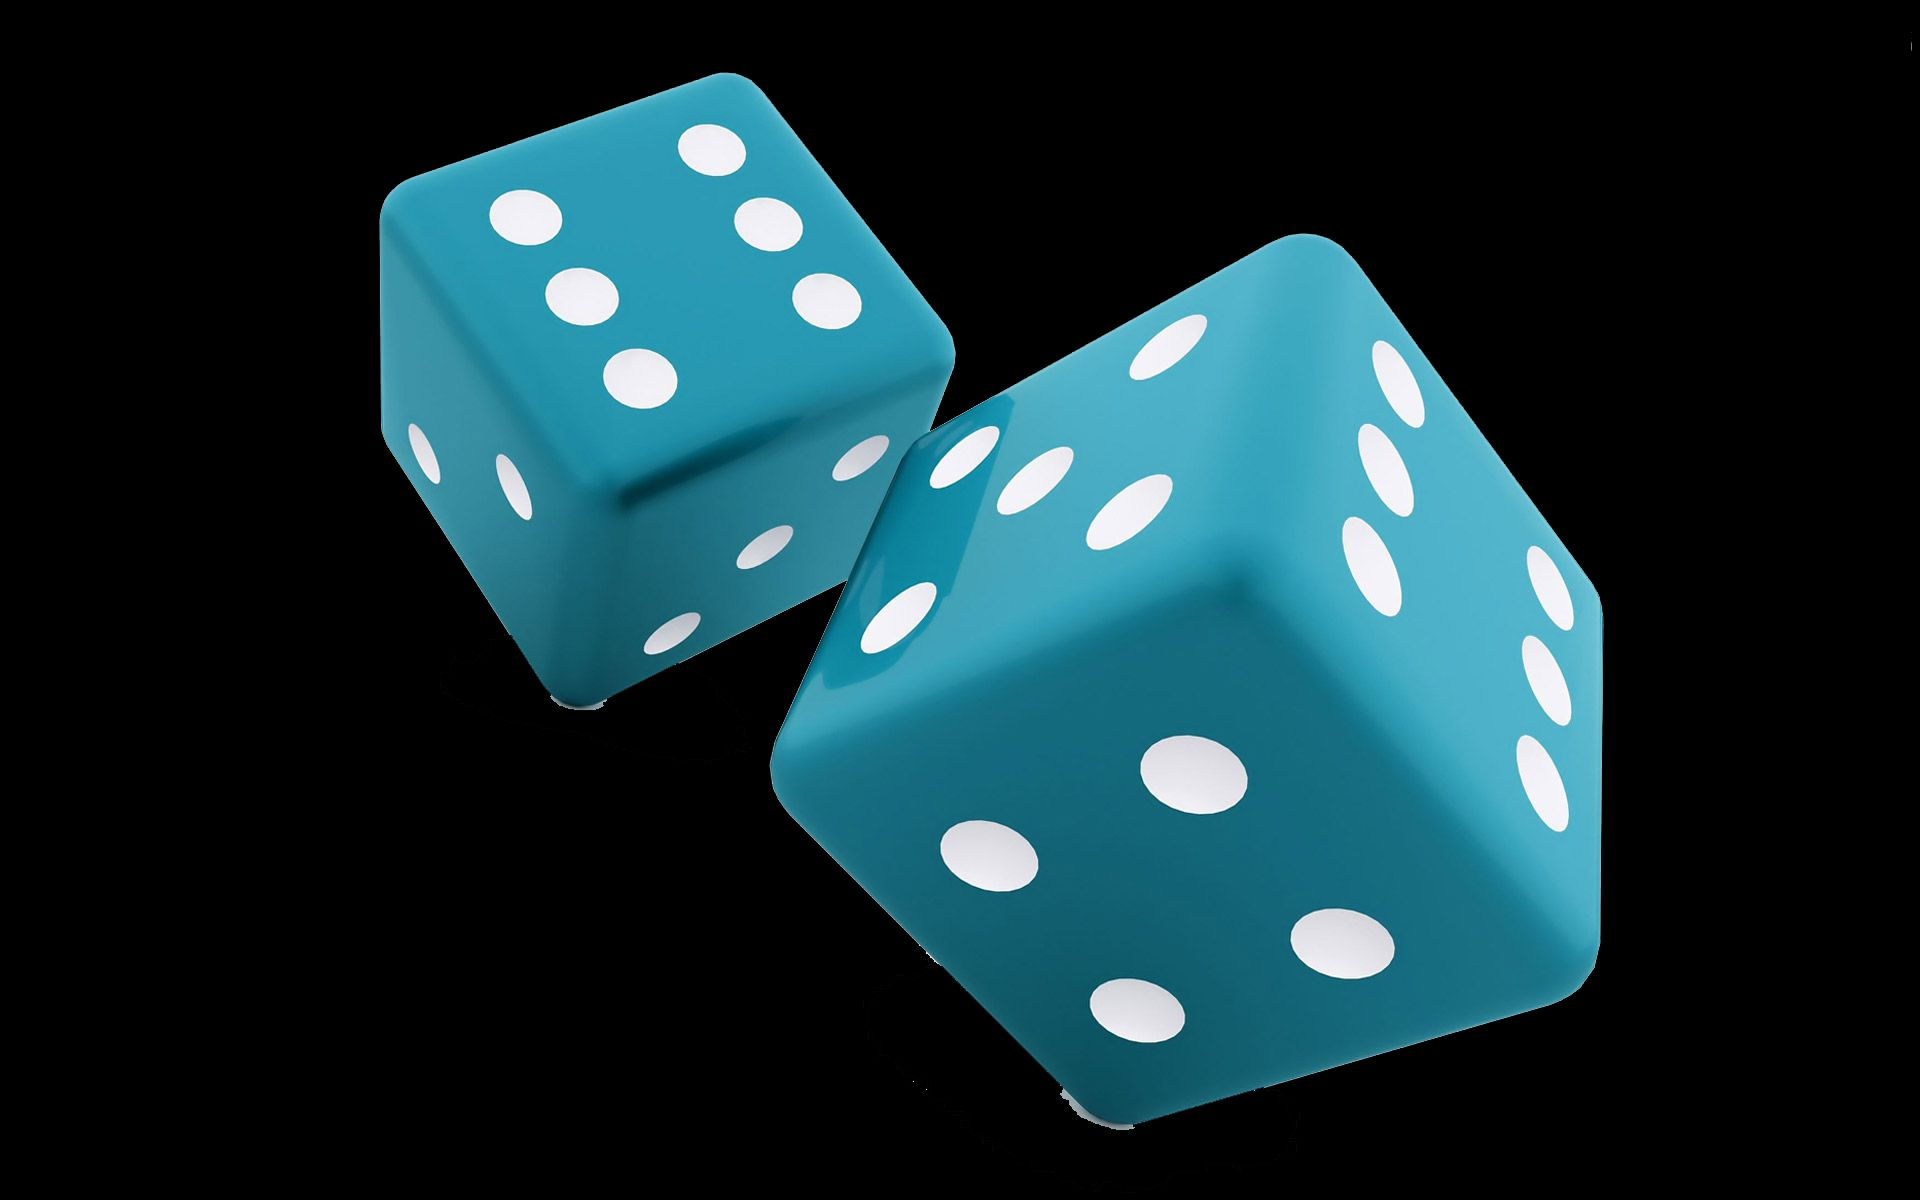 1920x1200 Colorful 3D Dice High Definition wallpaper